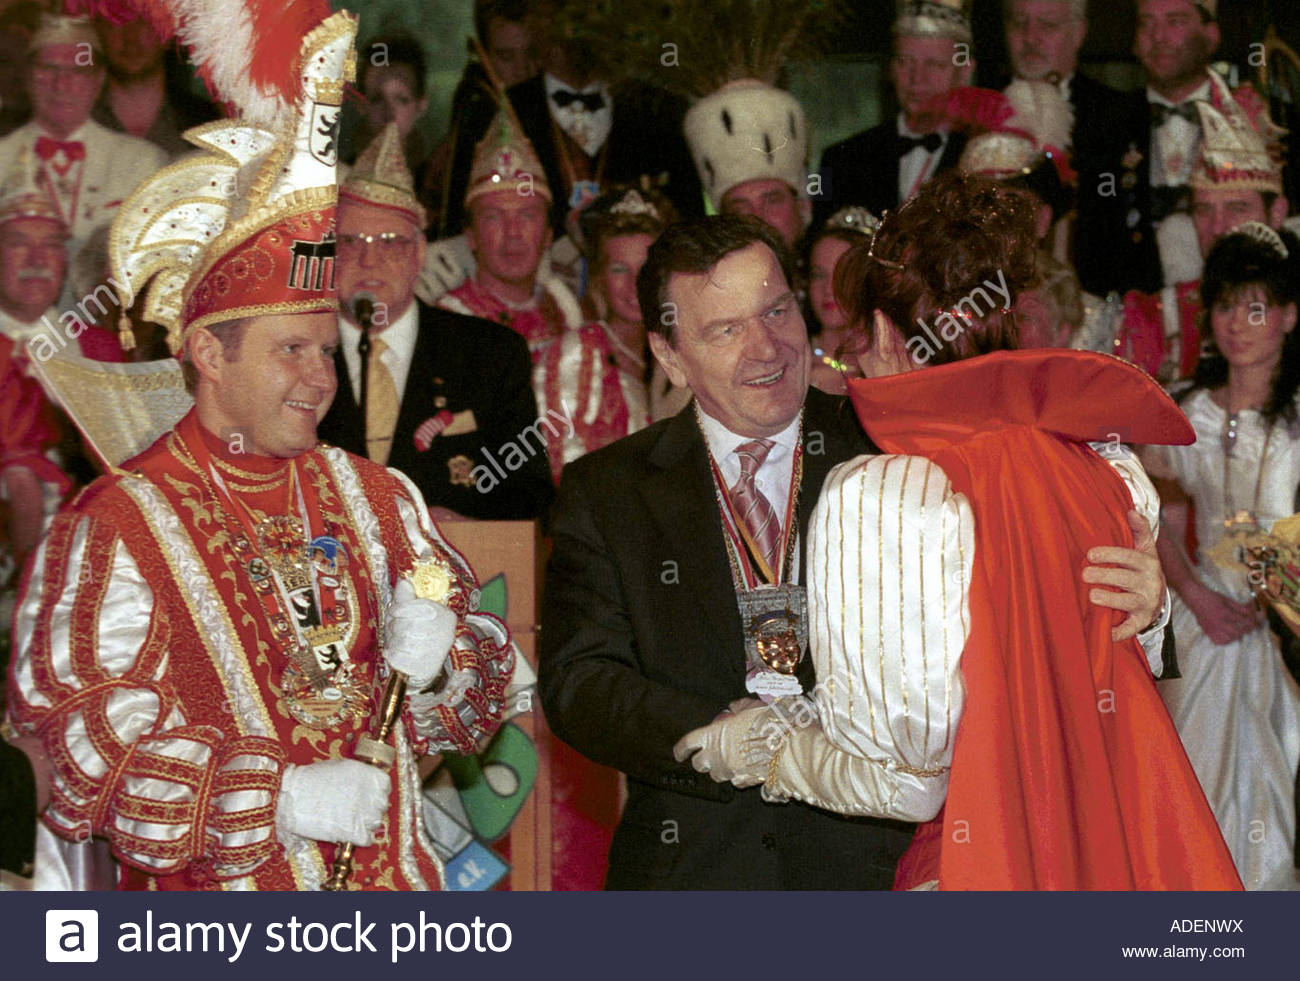 Image result for German Karneval 2001